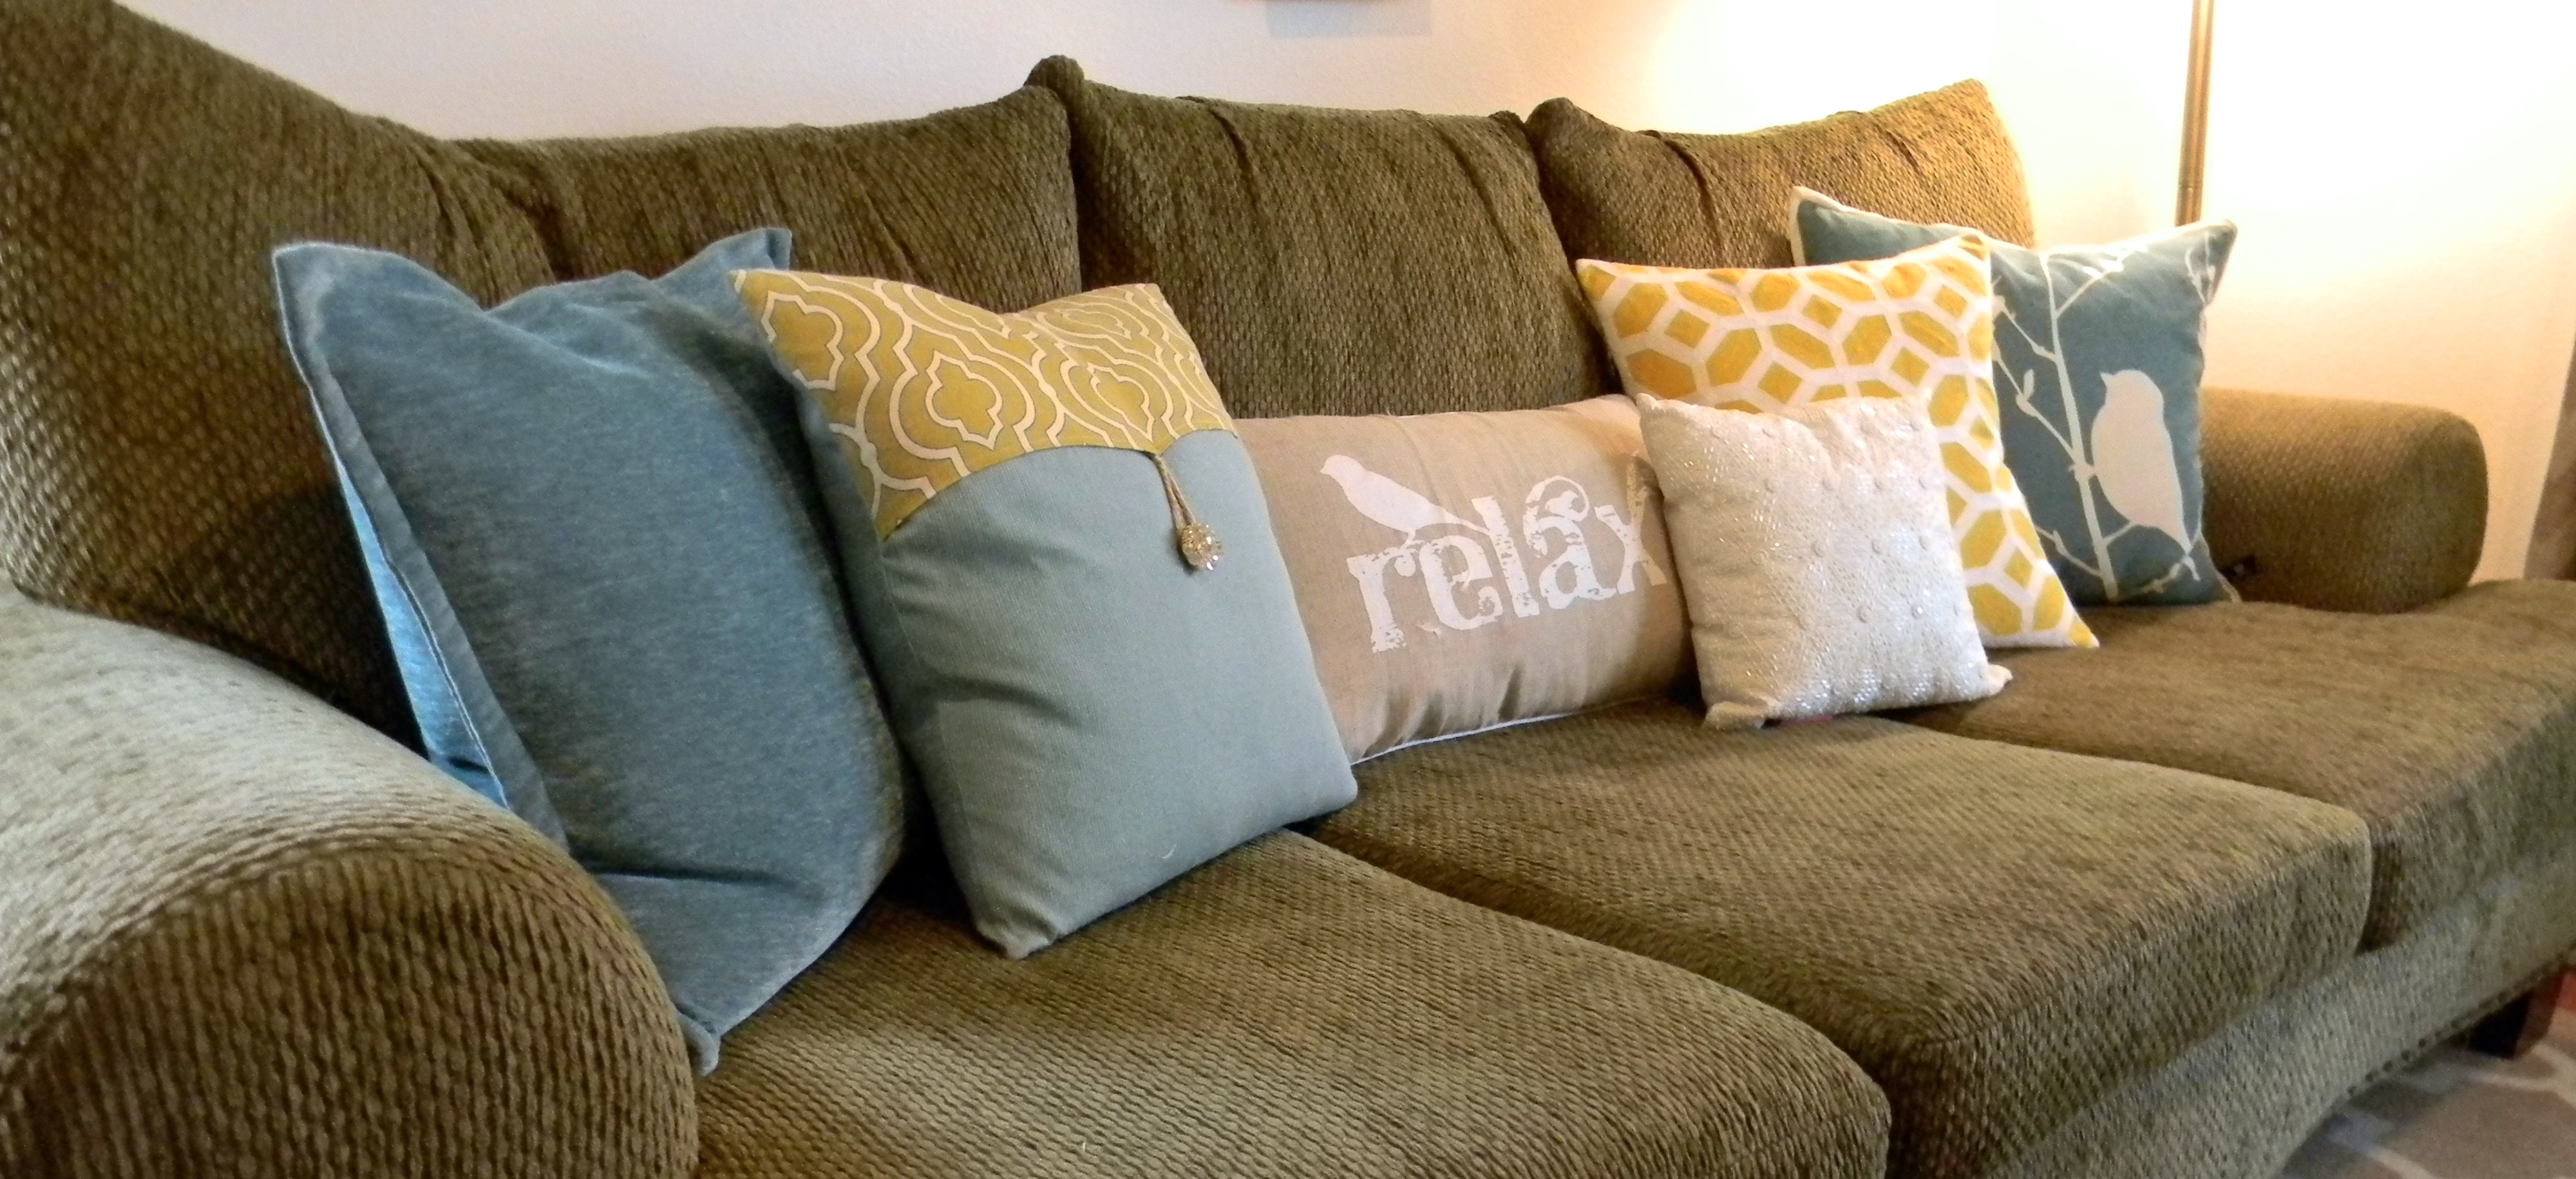 Living Room Design: Amazing Throw Pillows For Couch With Sofa For ...